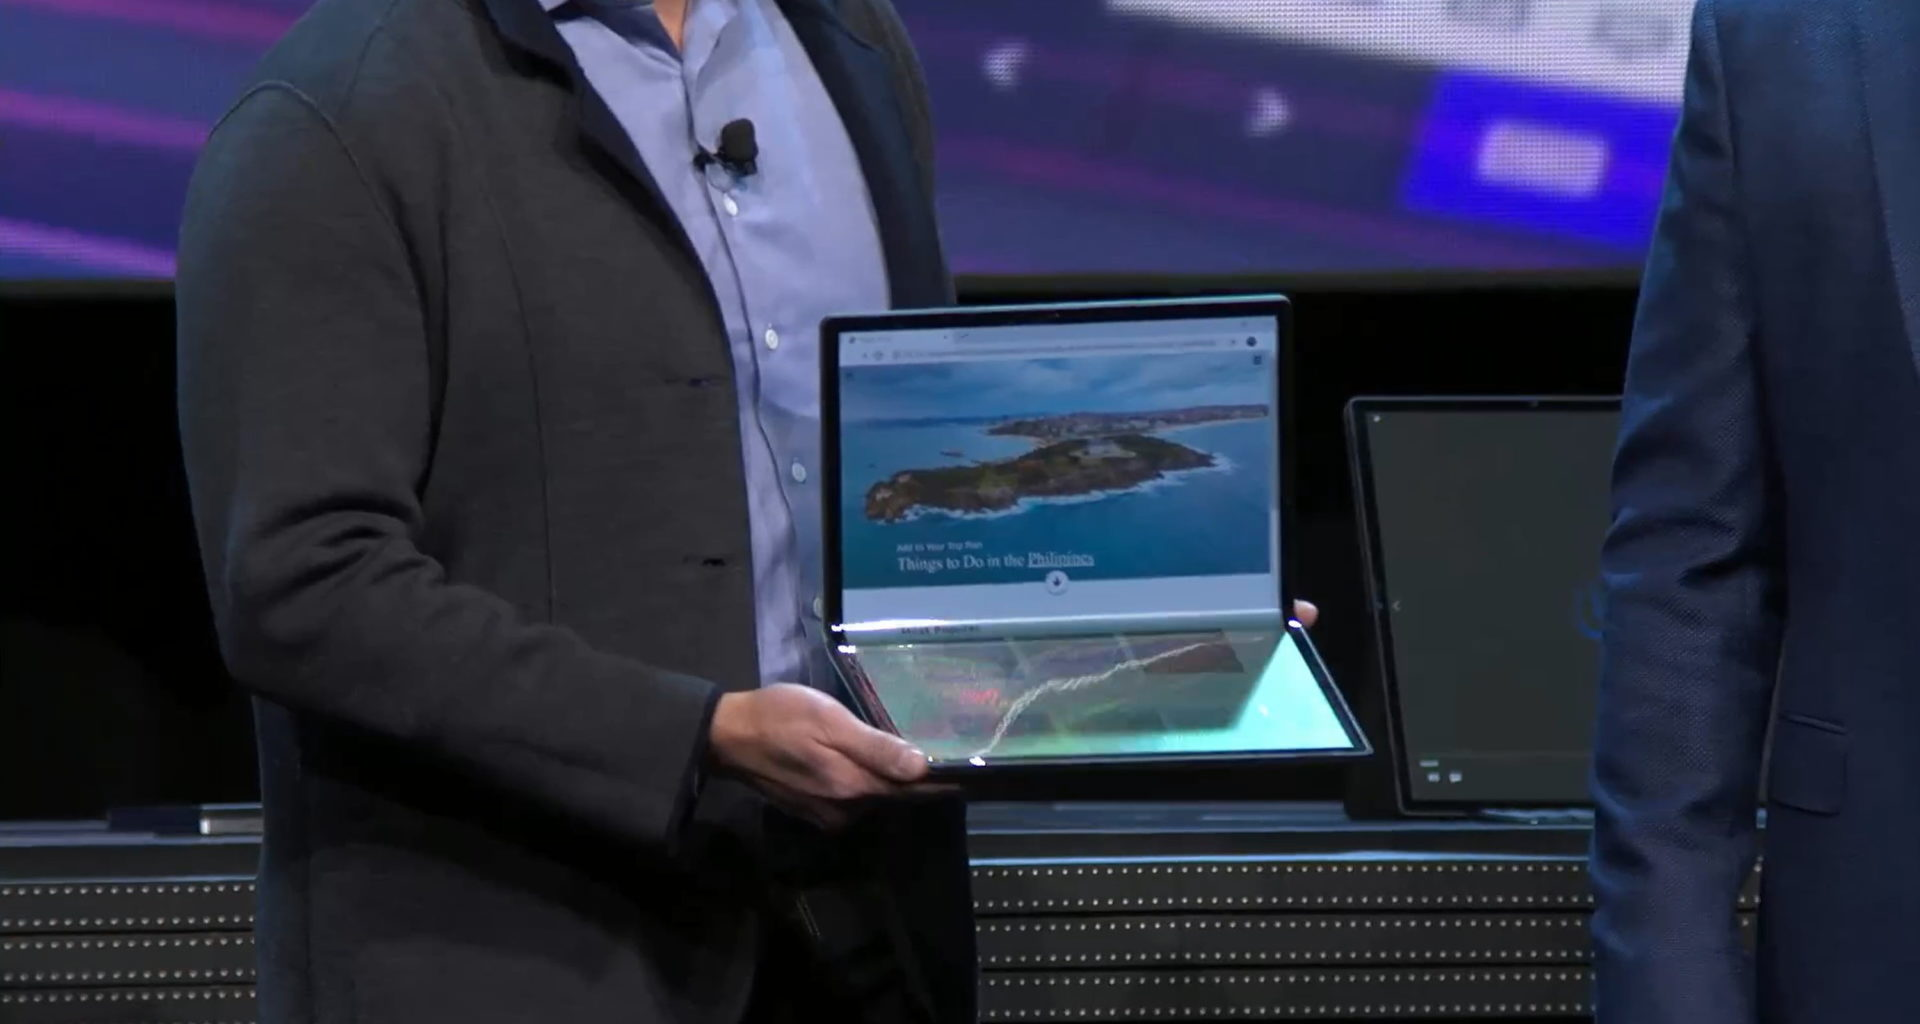 Intel powered foldable display Notebooks expected in the second half of 2021